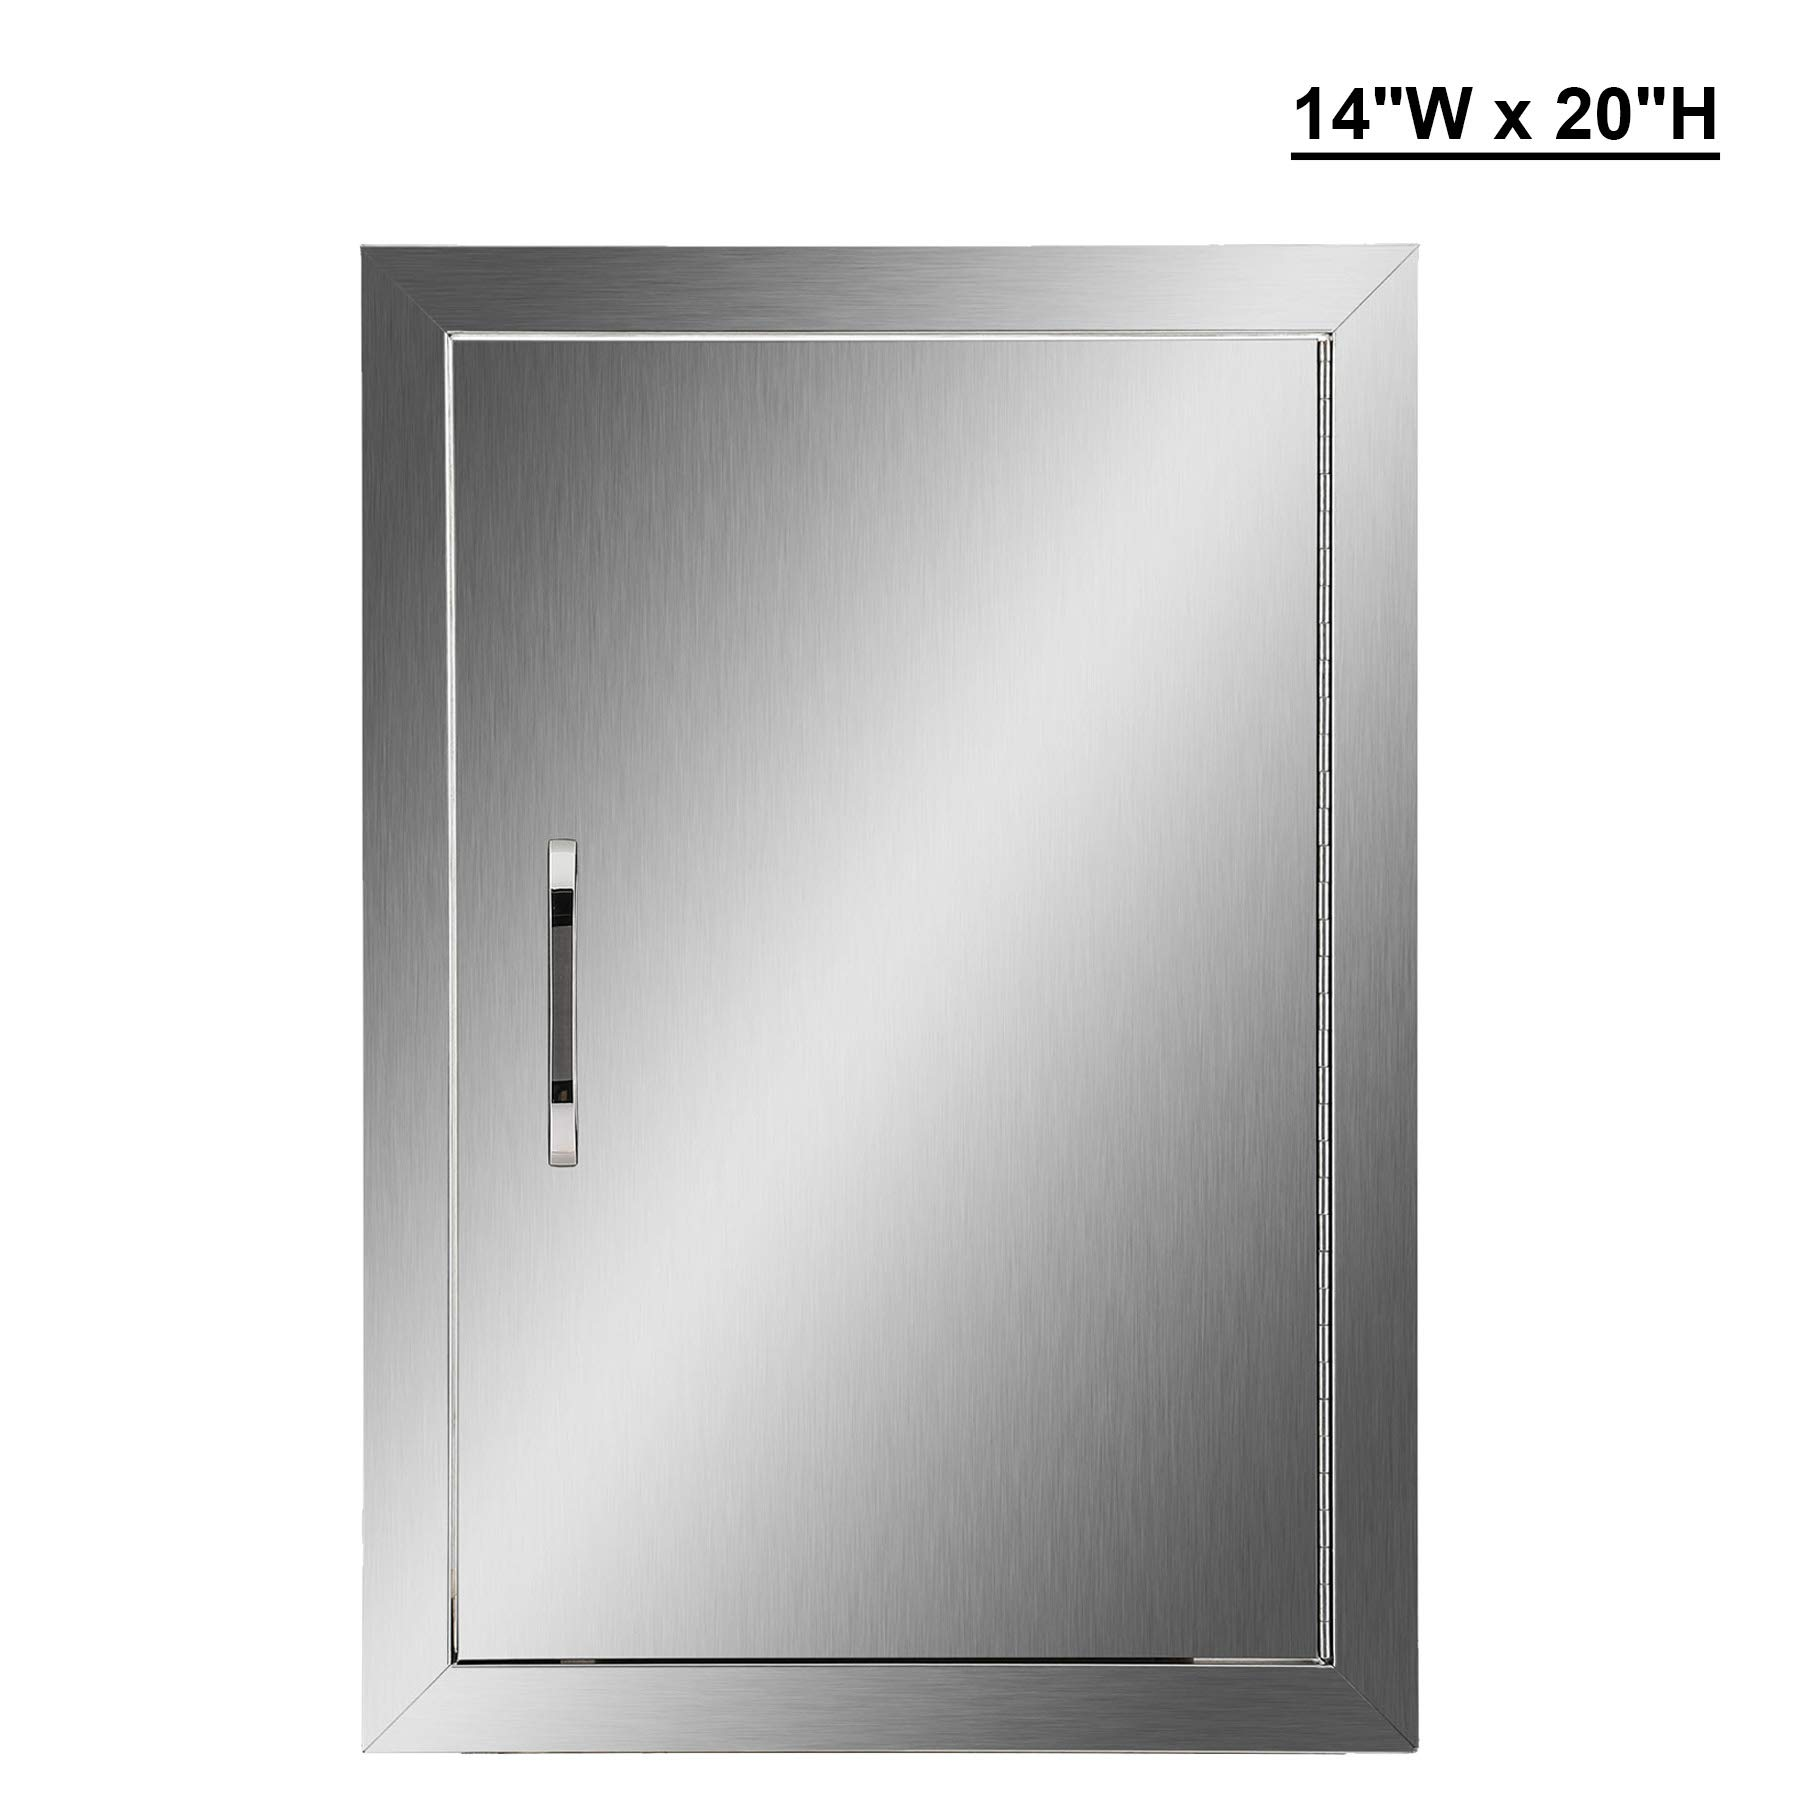 CO-Z Outdoor Kitchen Doors, 304 Stainless Steel Single BBQ Access Door for Outdoor Summer Kitchen Island, Grilling Station, Outside Cabinet, Barbeque Grill, Built-in SS BBQ Island Door (14'' W x 20'' H) by CO-Z